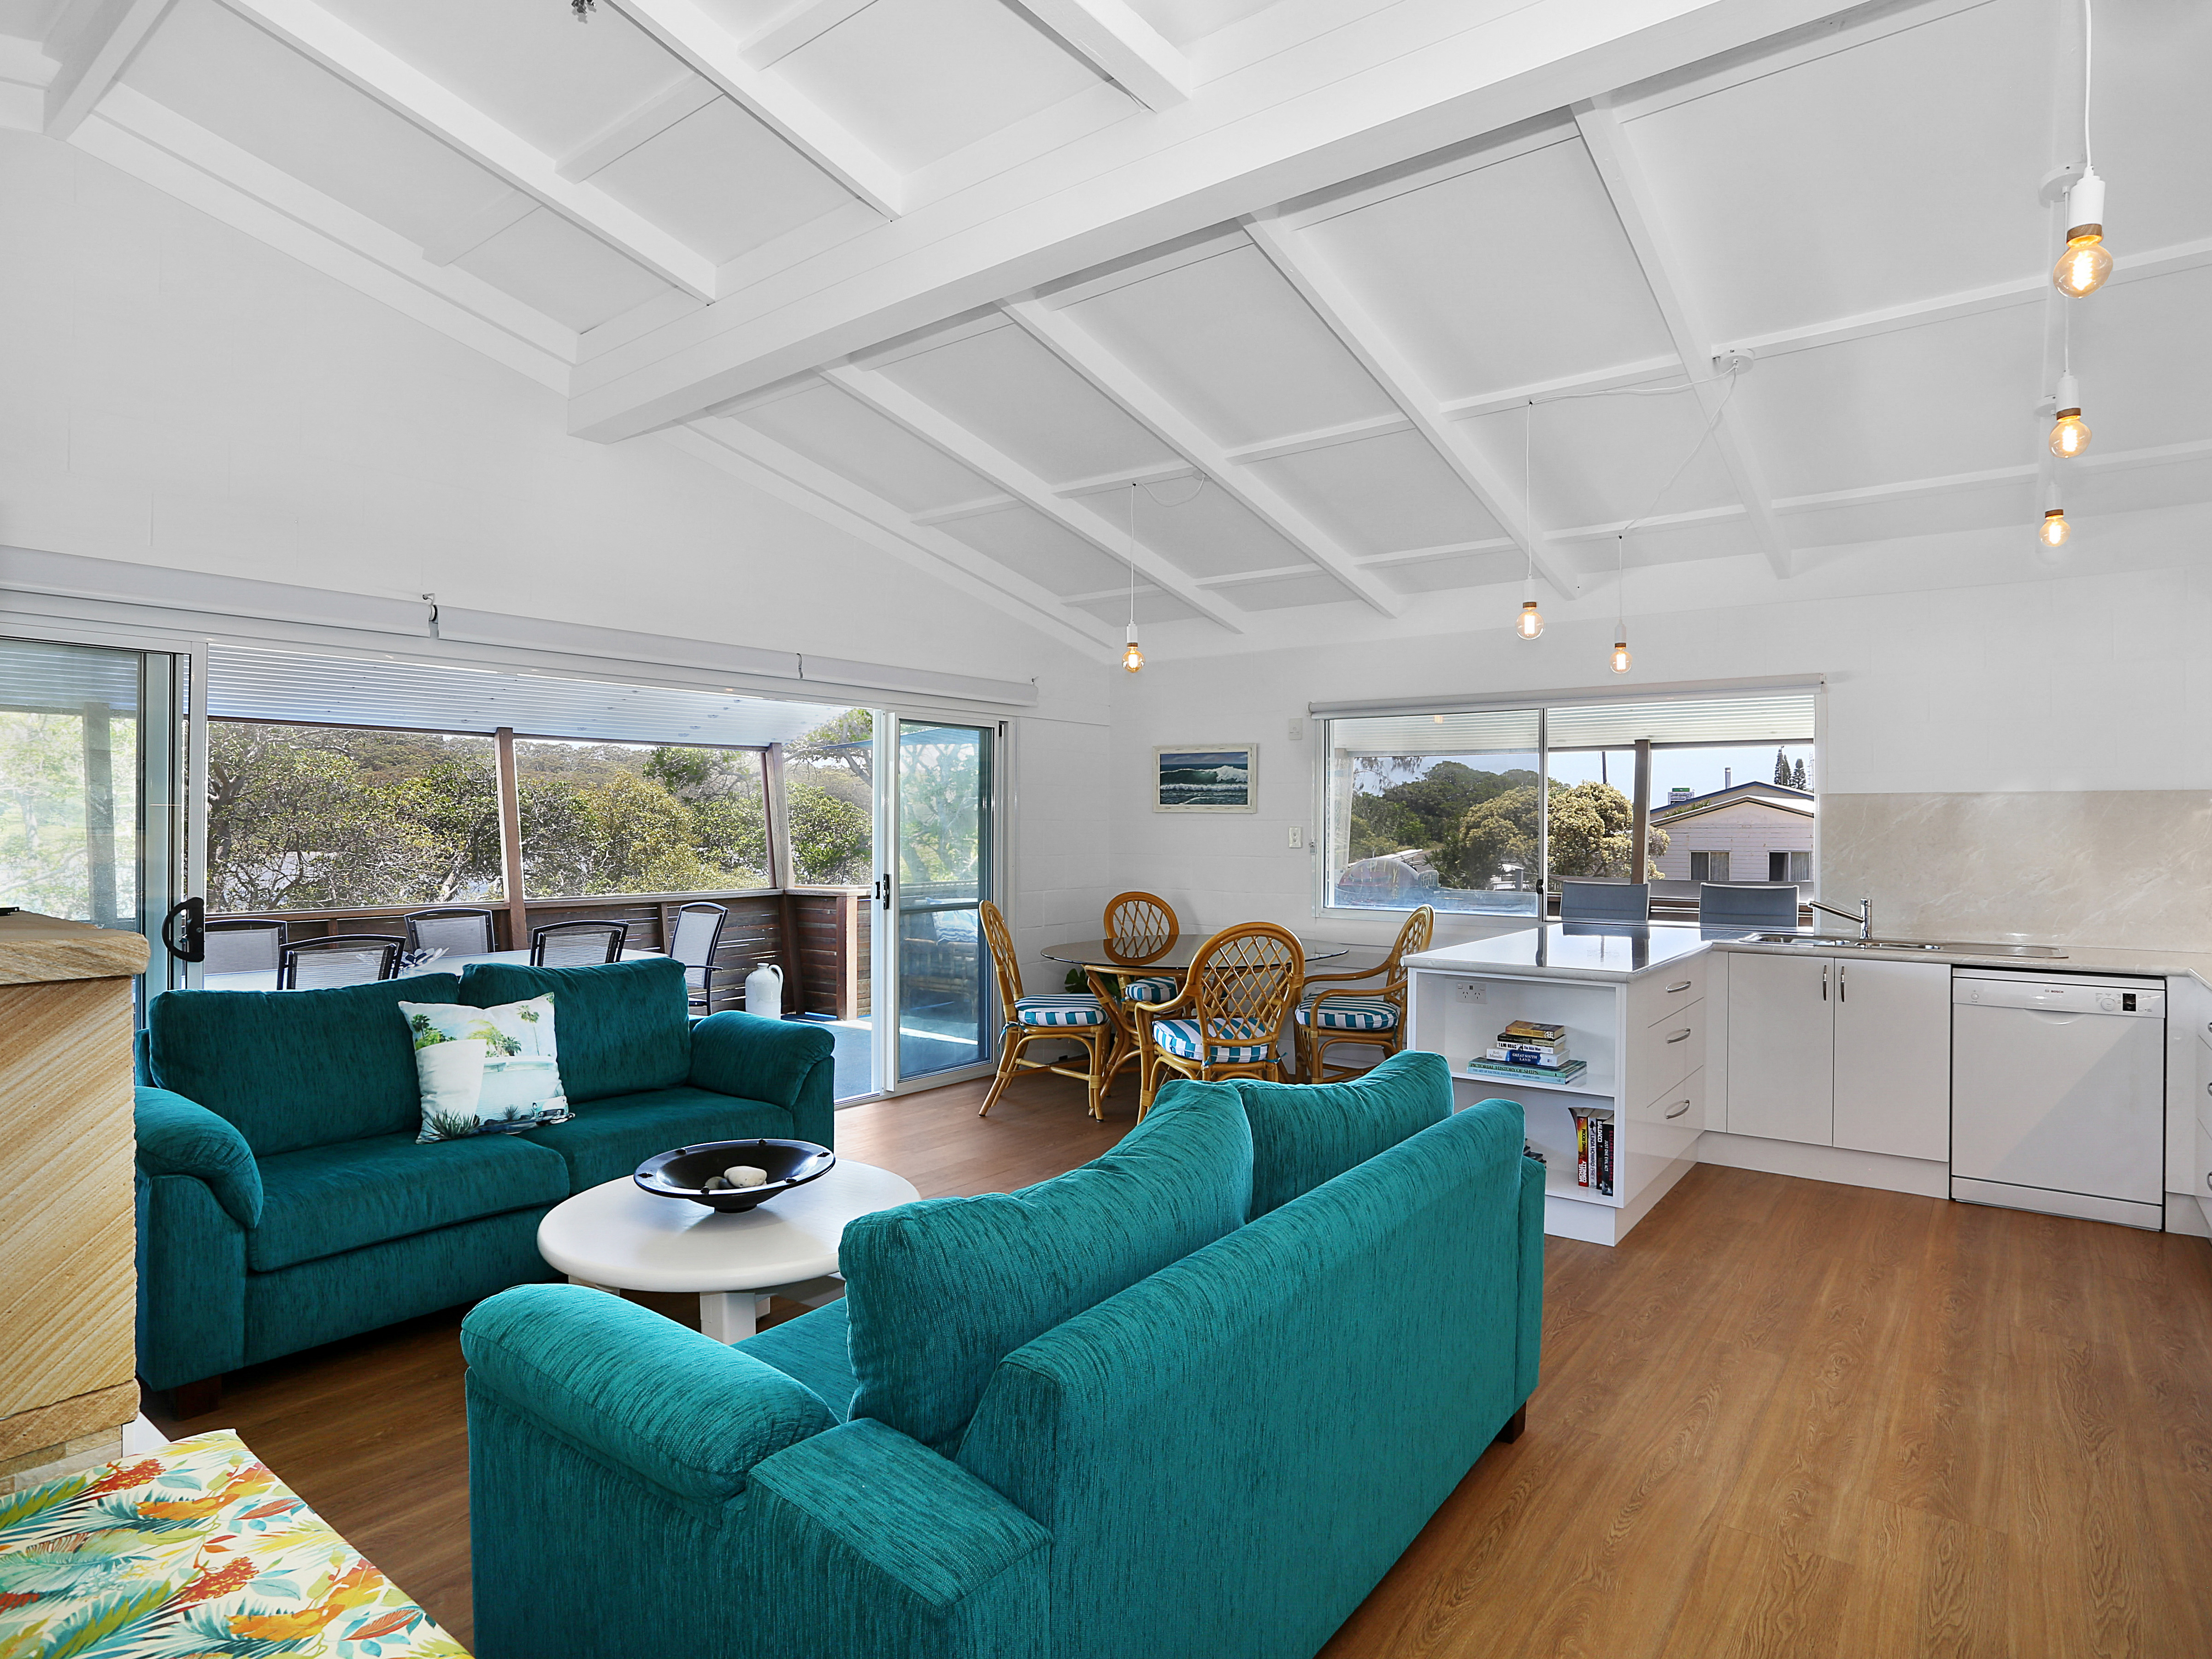 Admirals Deck - Blue River Apartments gallery image